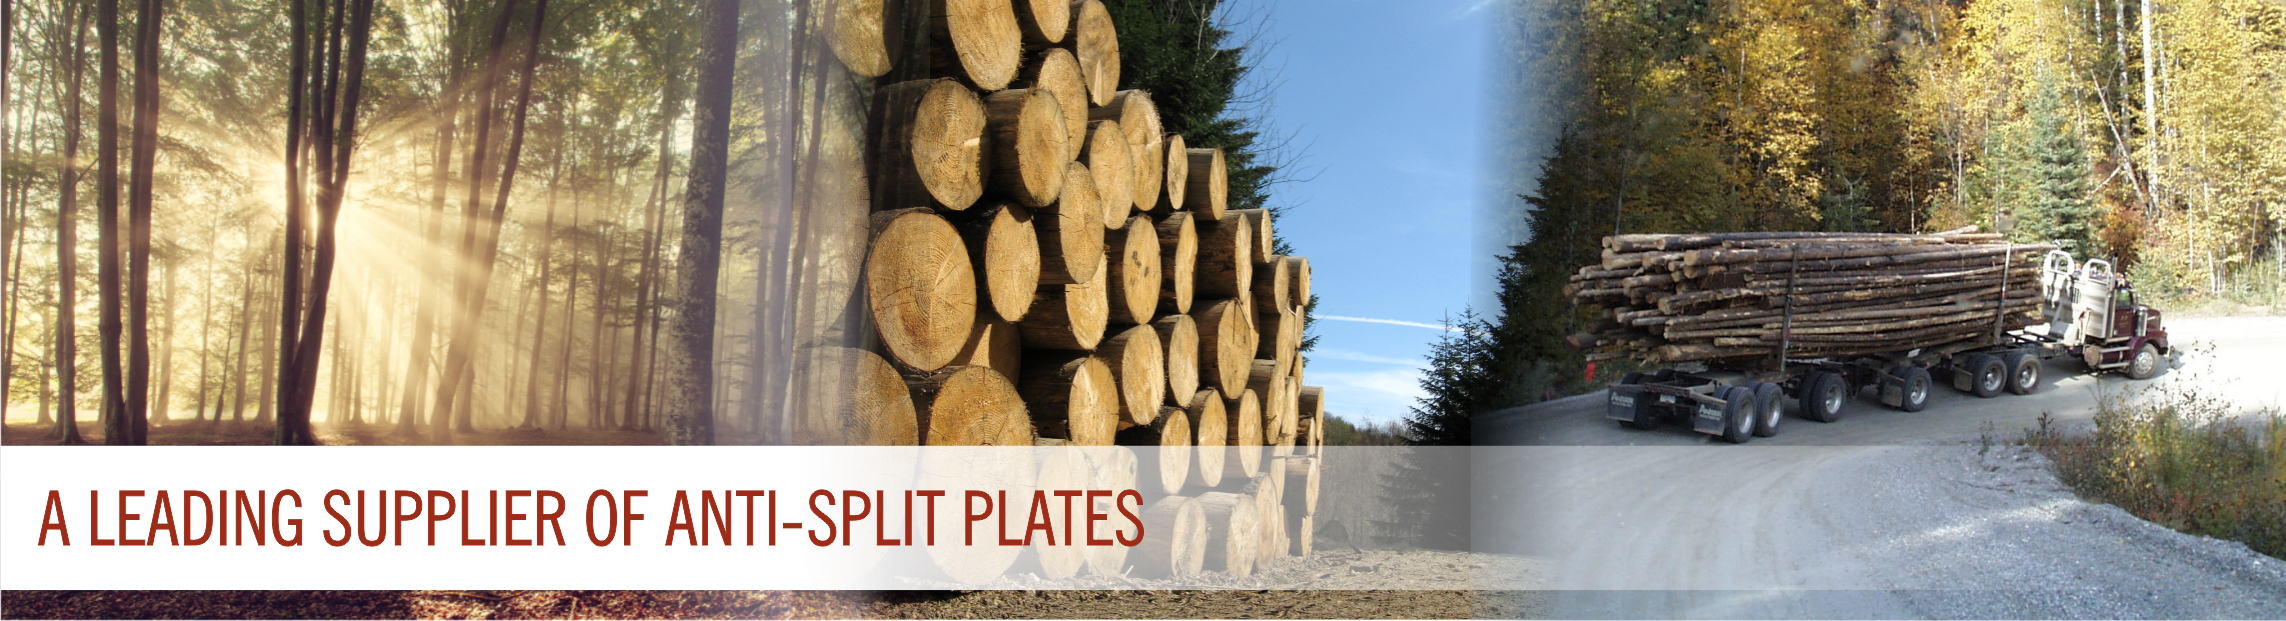 A Leading Supplier of Anti-split Plates